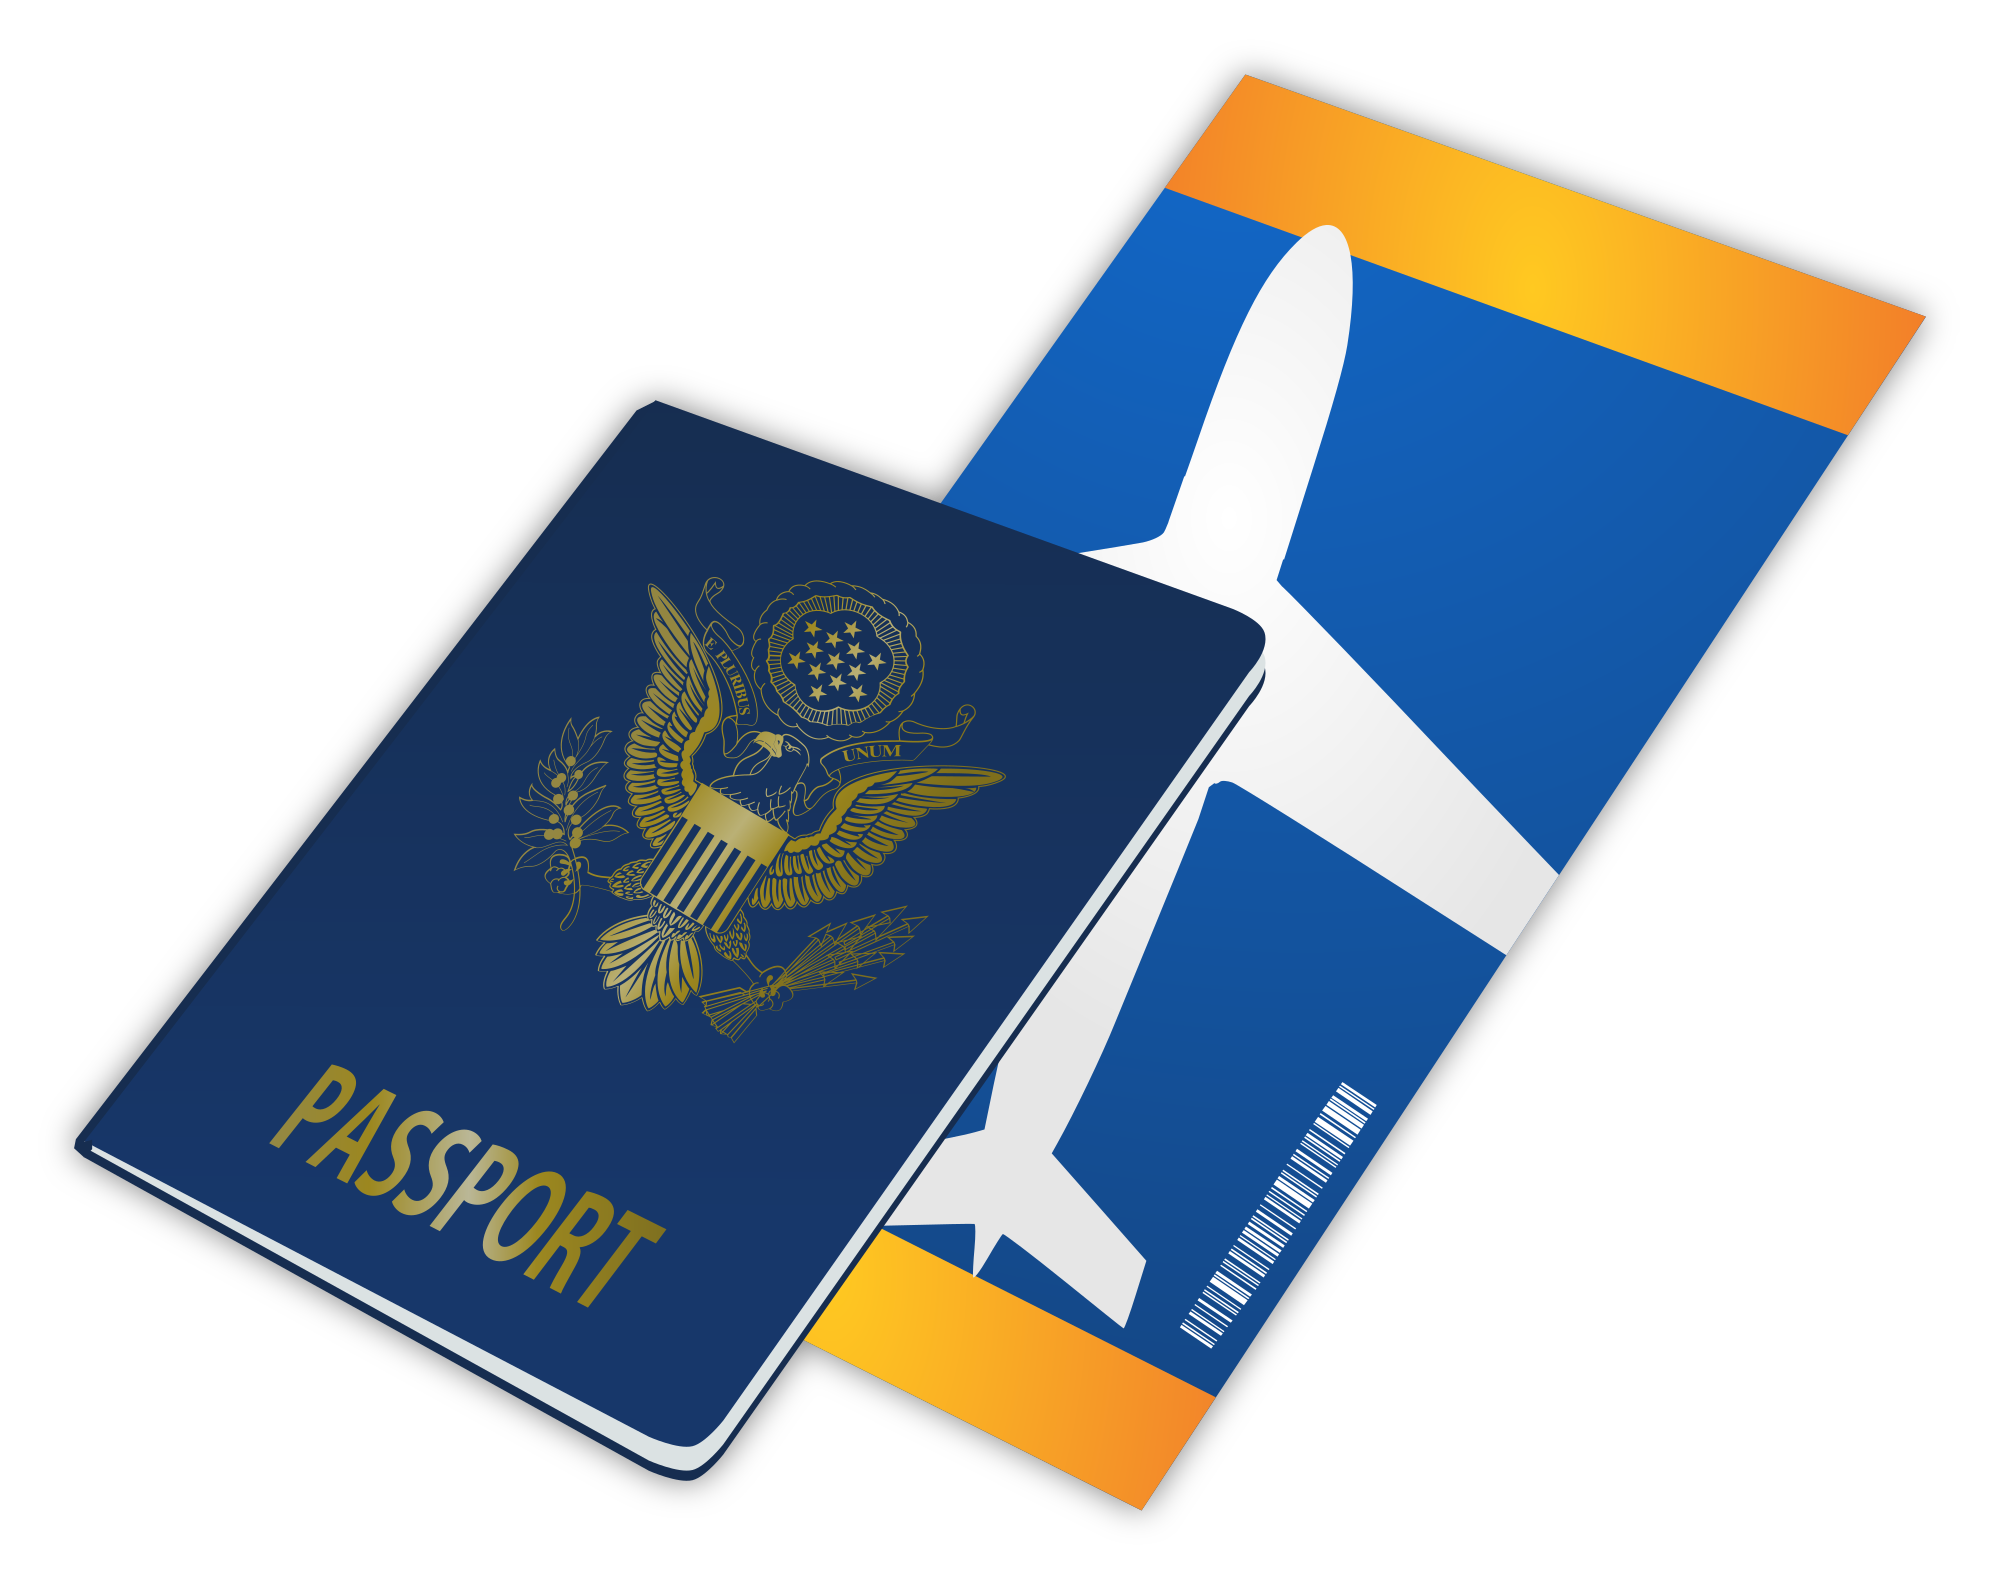 Tickets clipart plane ticket. File passport and airline